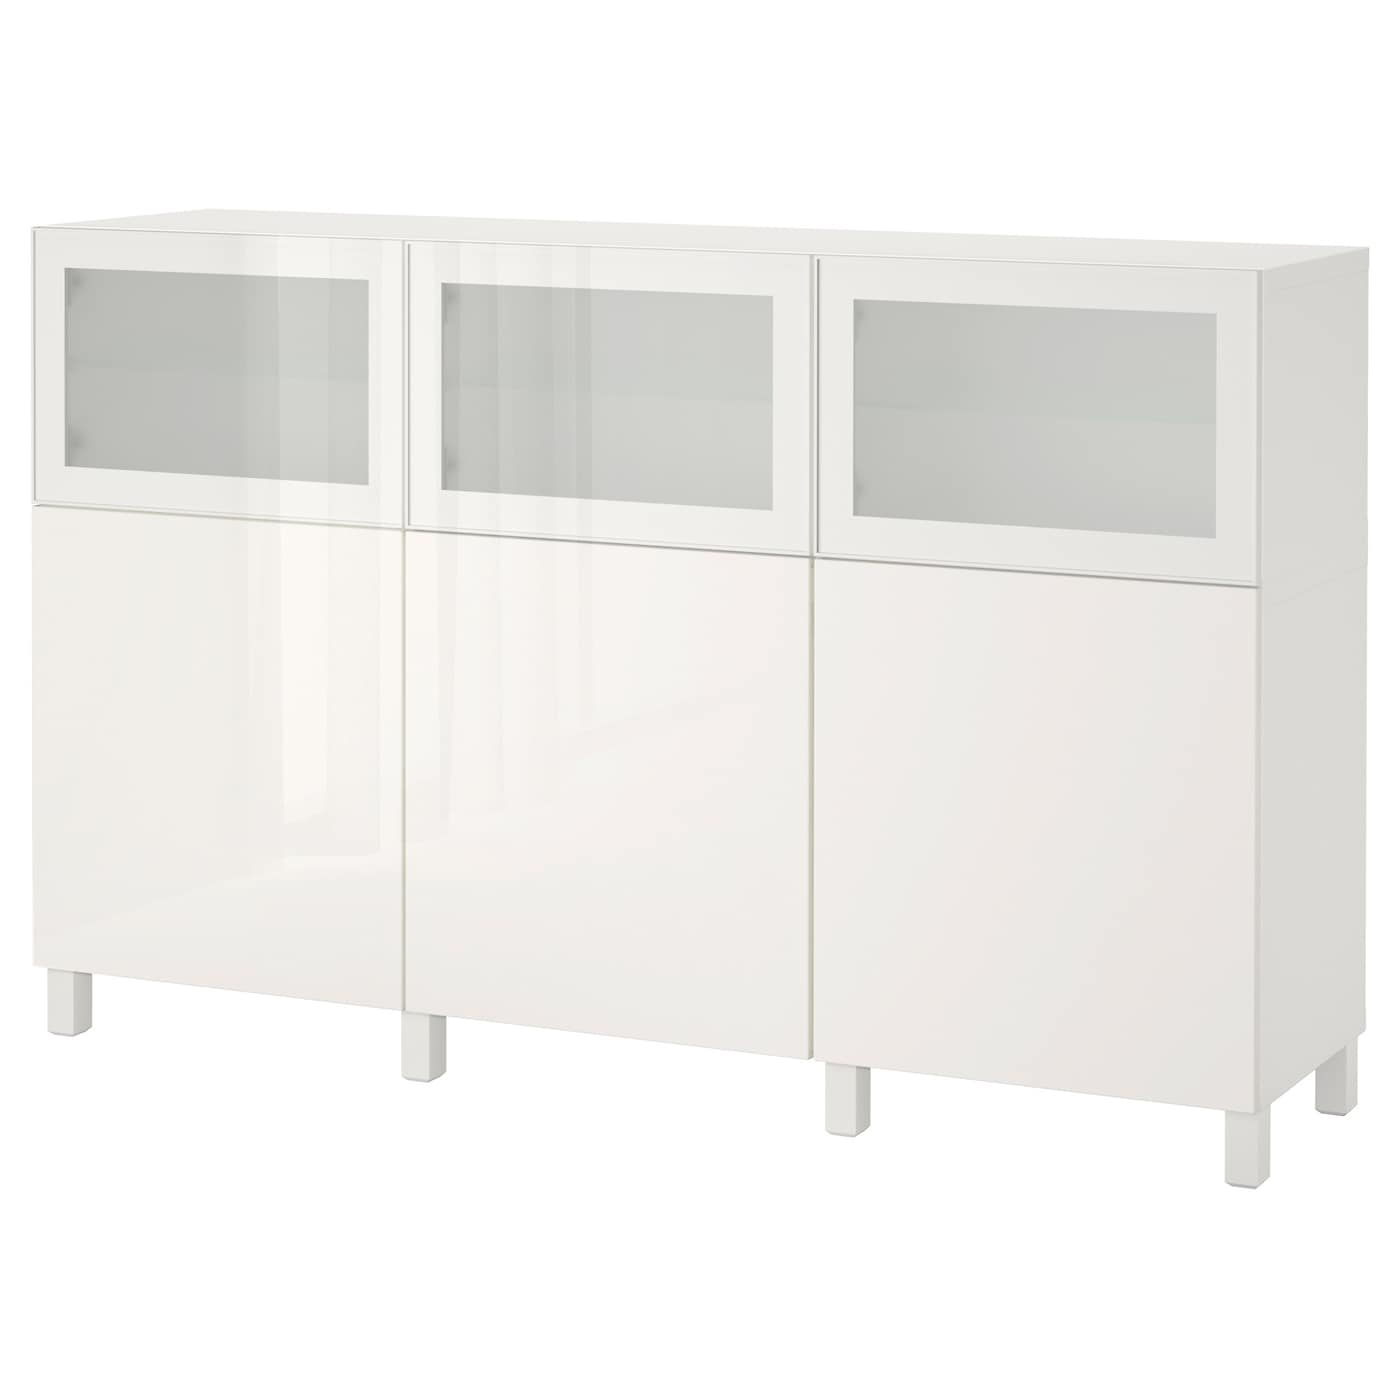 best combinaison rangement portes blanc selsviken glassvik brillant blanc verre givr 180 x 40. Black Bedroom Furniture Sets. Home Design Ideas